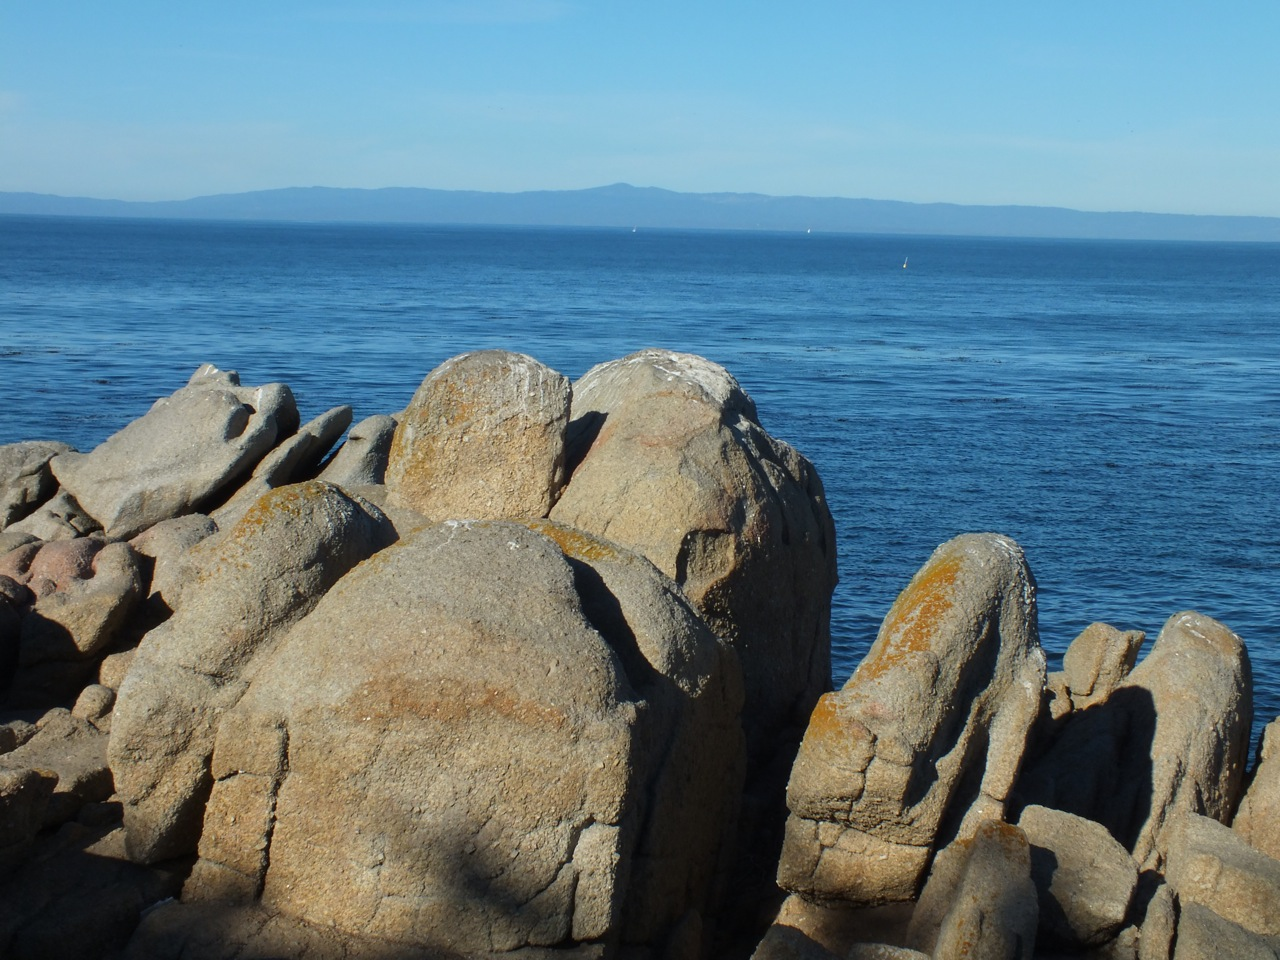 Loma Prieta and Santa Cruz Mountains from Lover's Point, Pacific Grove